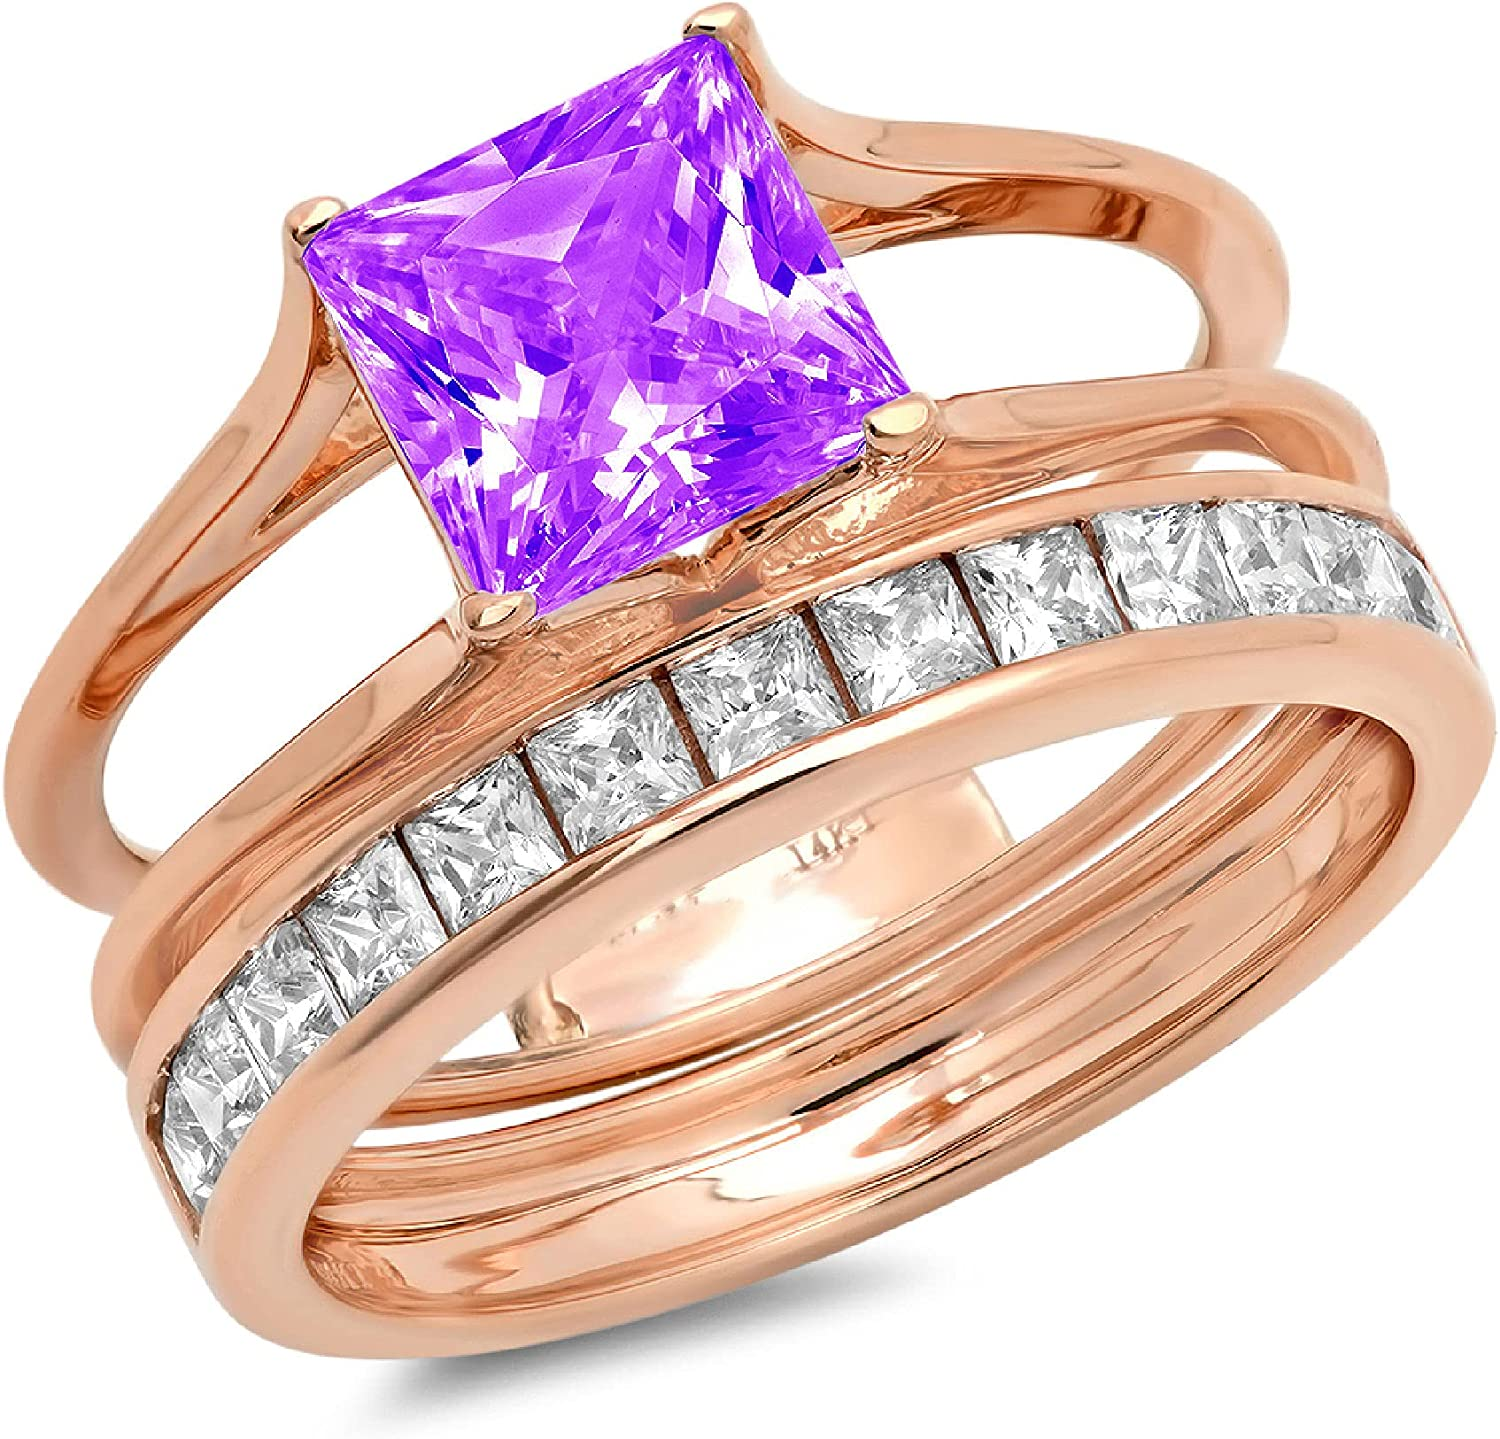 Clara Pucci 3.40ct Princess Cut Pave Solitaire Accent Genuine Flawless Natural Purple Amethyst Engagement Promise Statement Anniversary Bridal Wedding Ring Band set Sliding Solid 18K Rose Gold